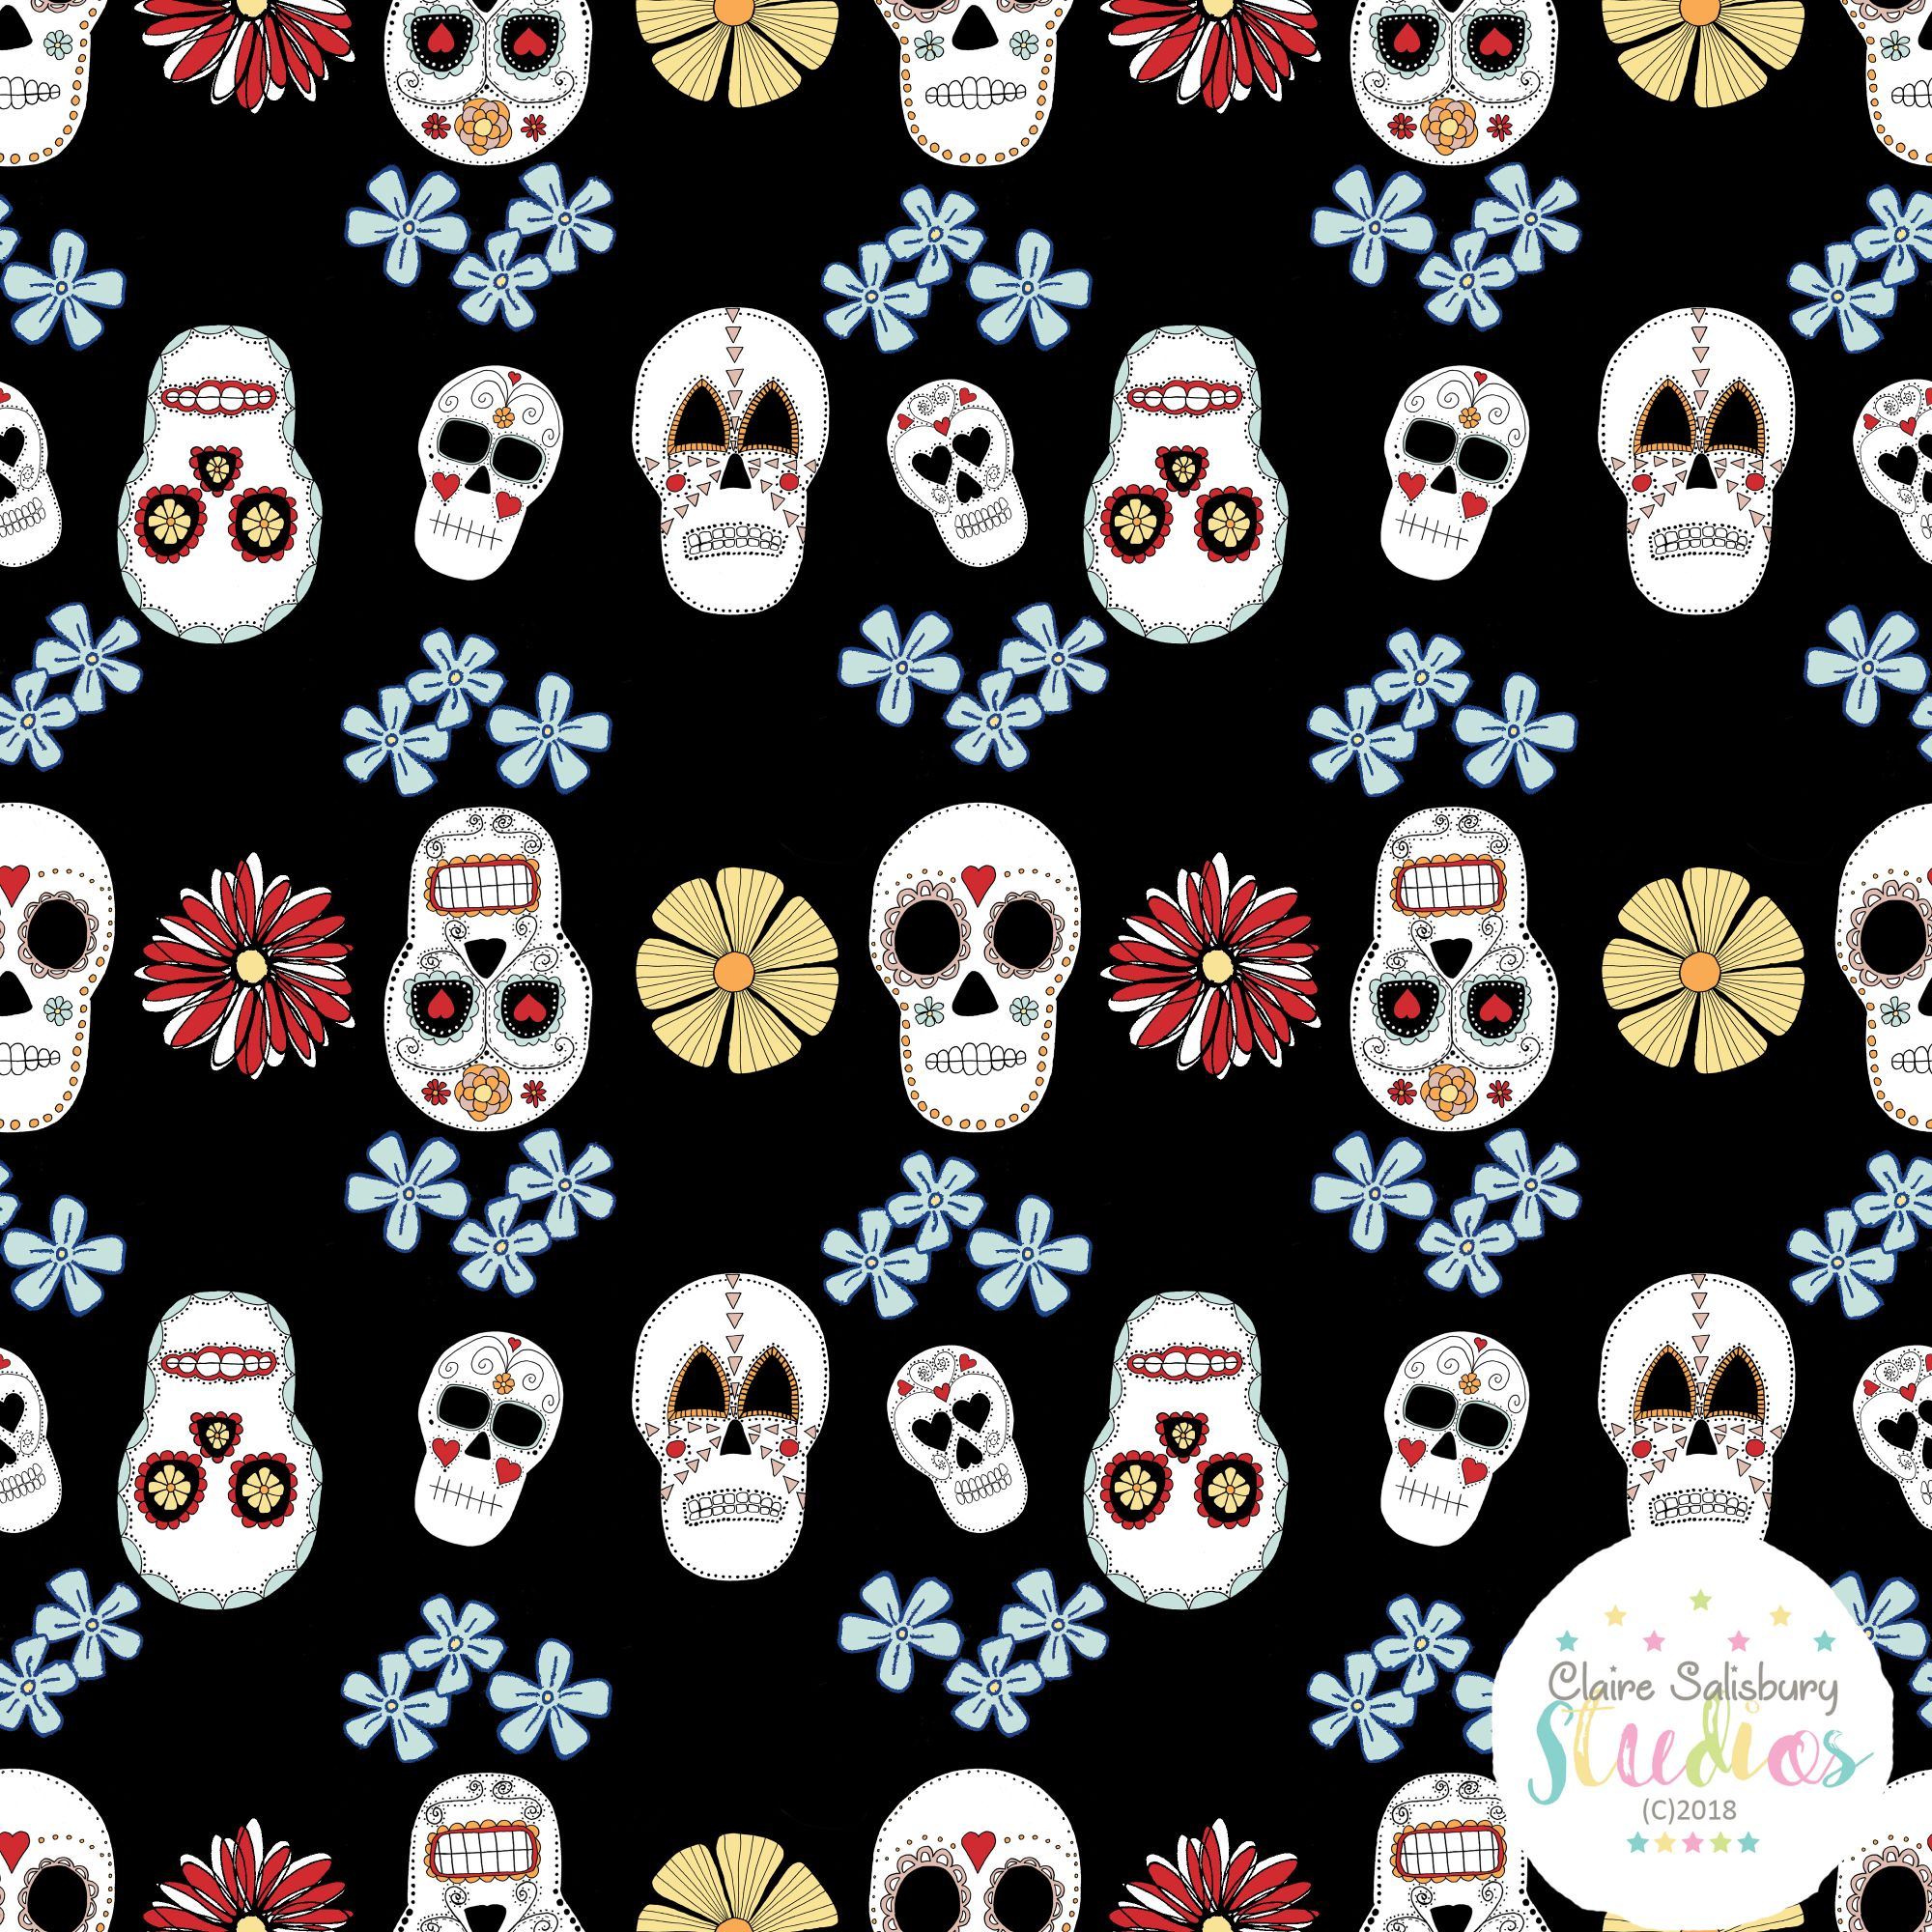 FOLK FIESTA - SKULL ILLUSTRATION - BLACK BACKGROUND 2